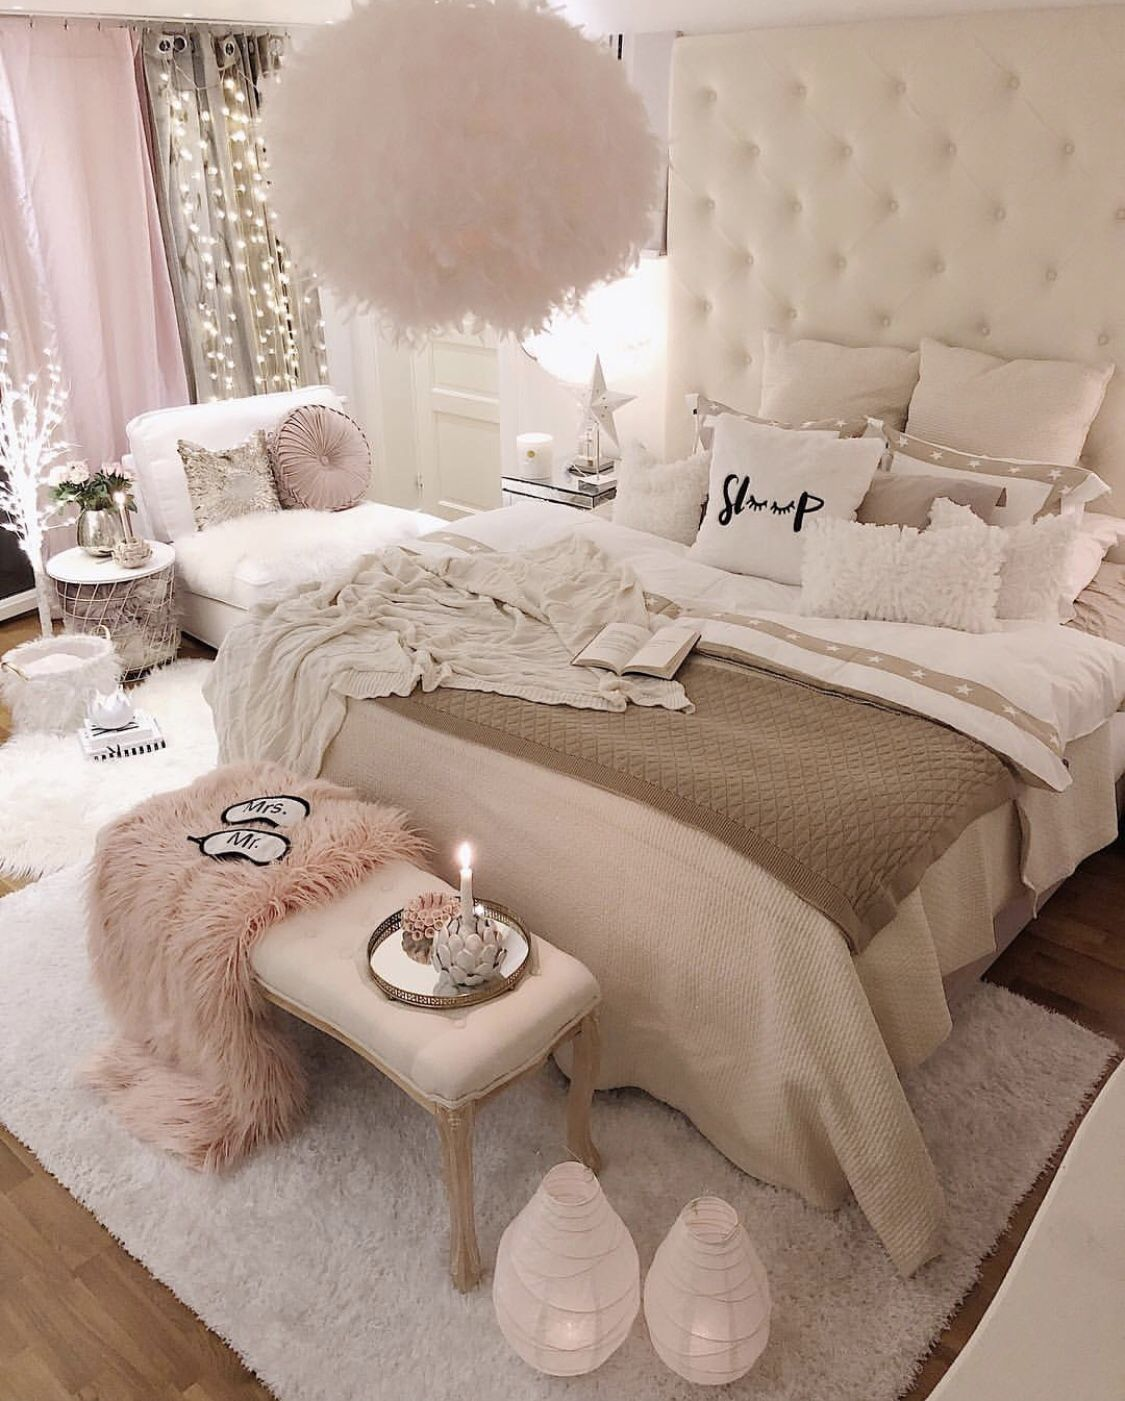 Tiny Master Bedroom Decorating Ideas Pic 012: Pin On Bedding